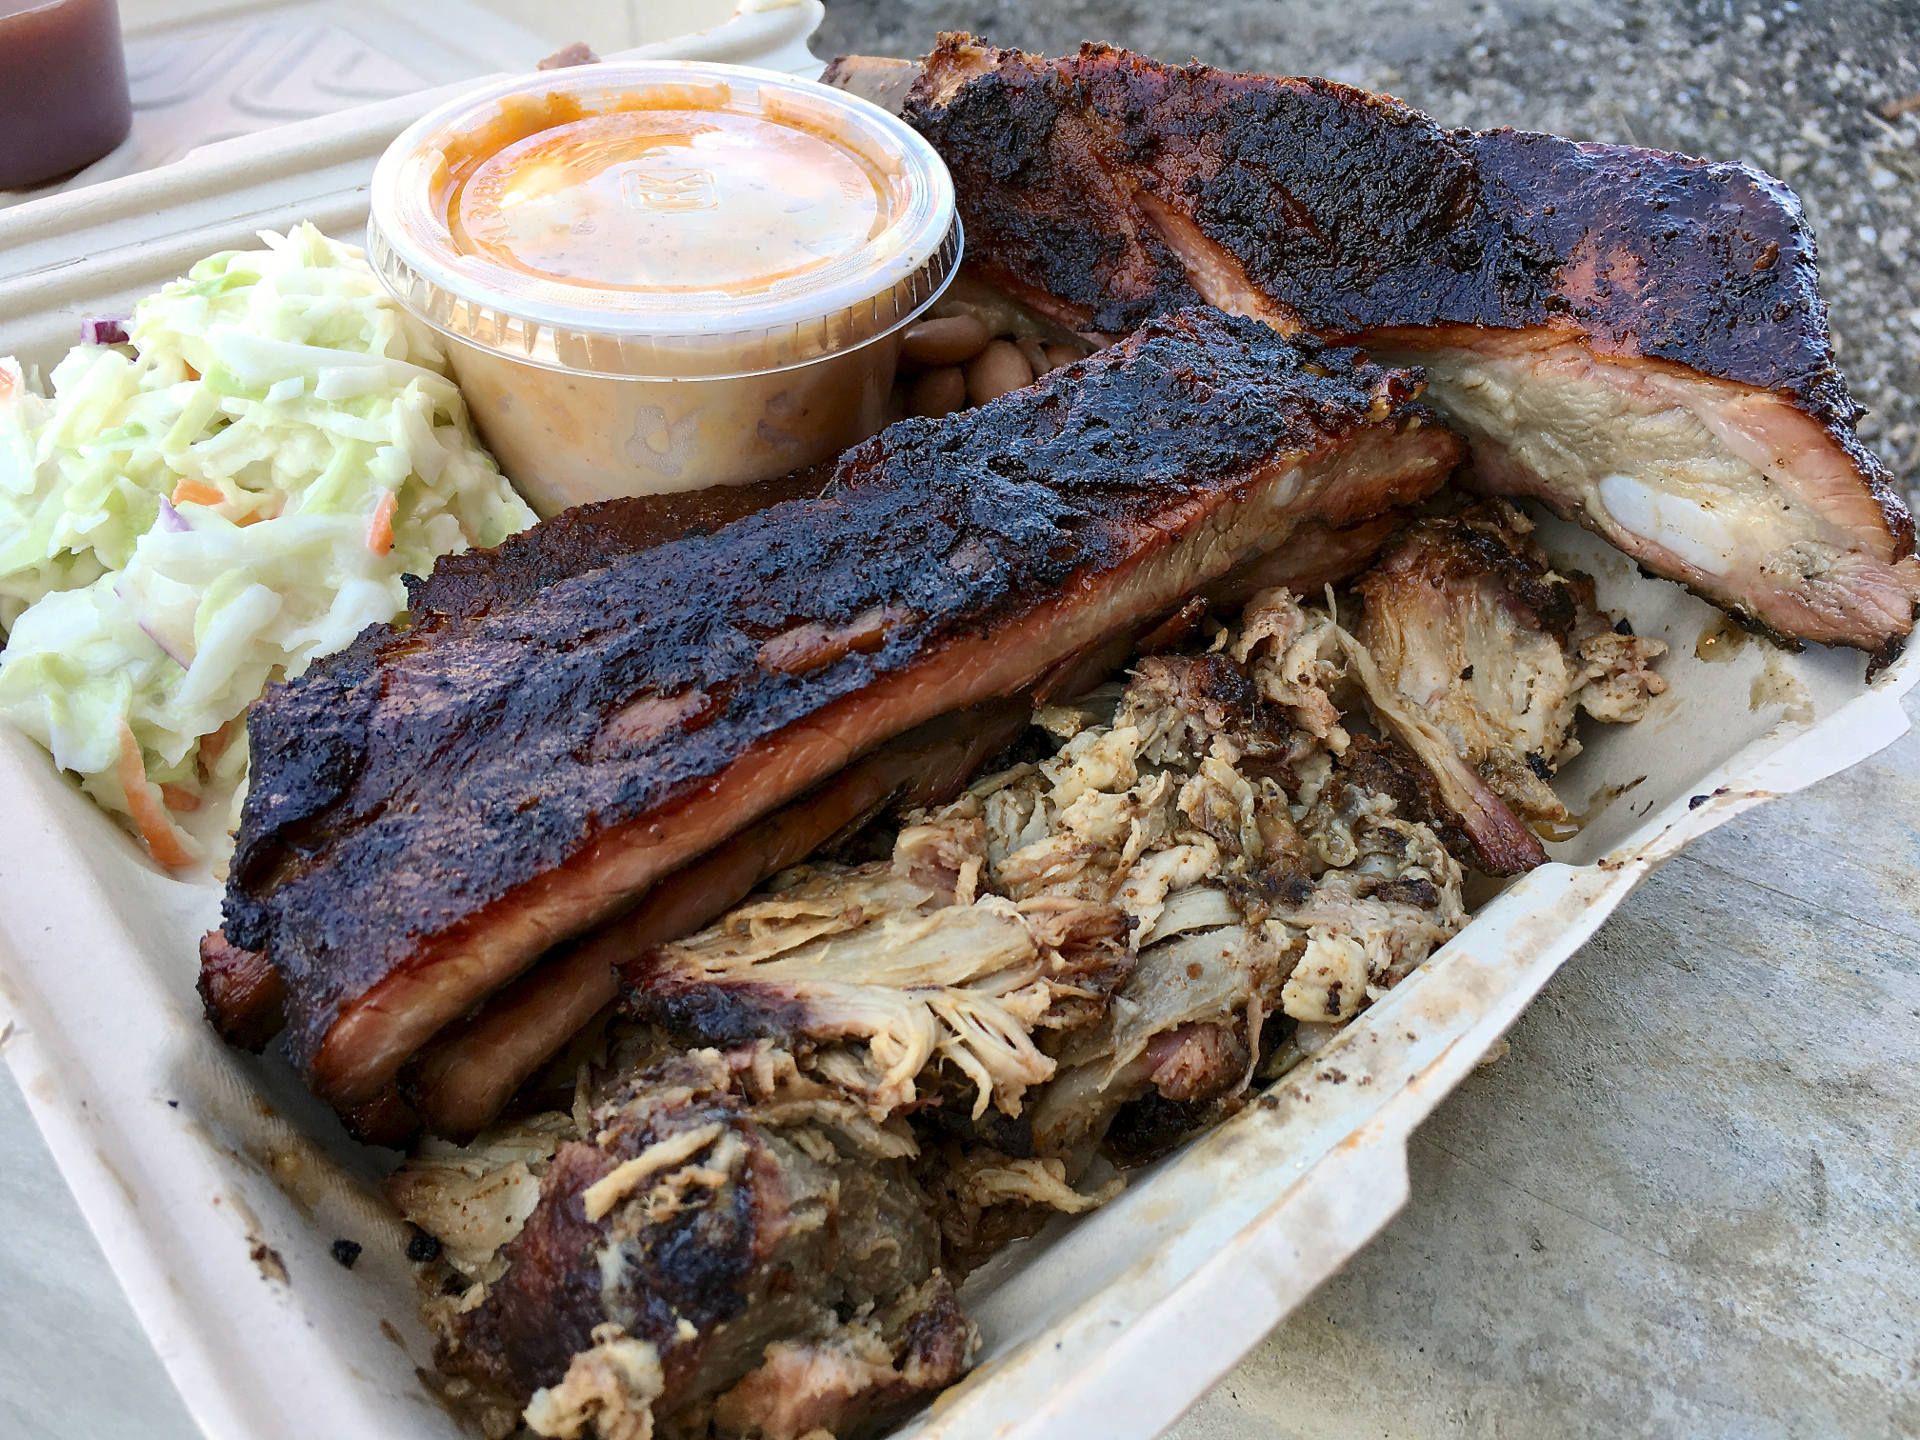 A combination plate with ribs and pulled pork at Gorilla BBQ.